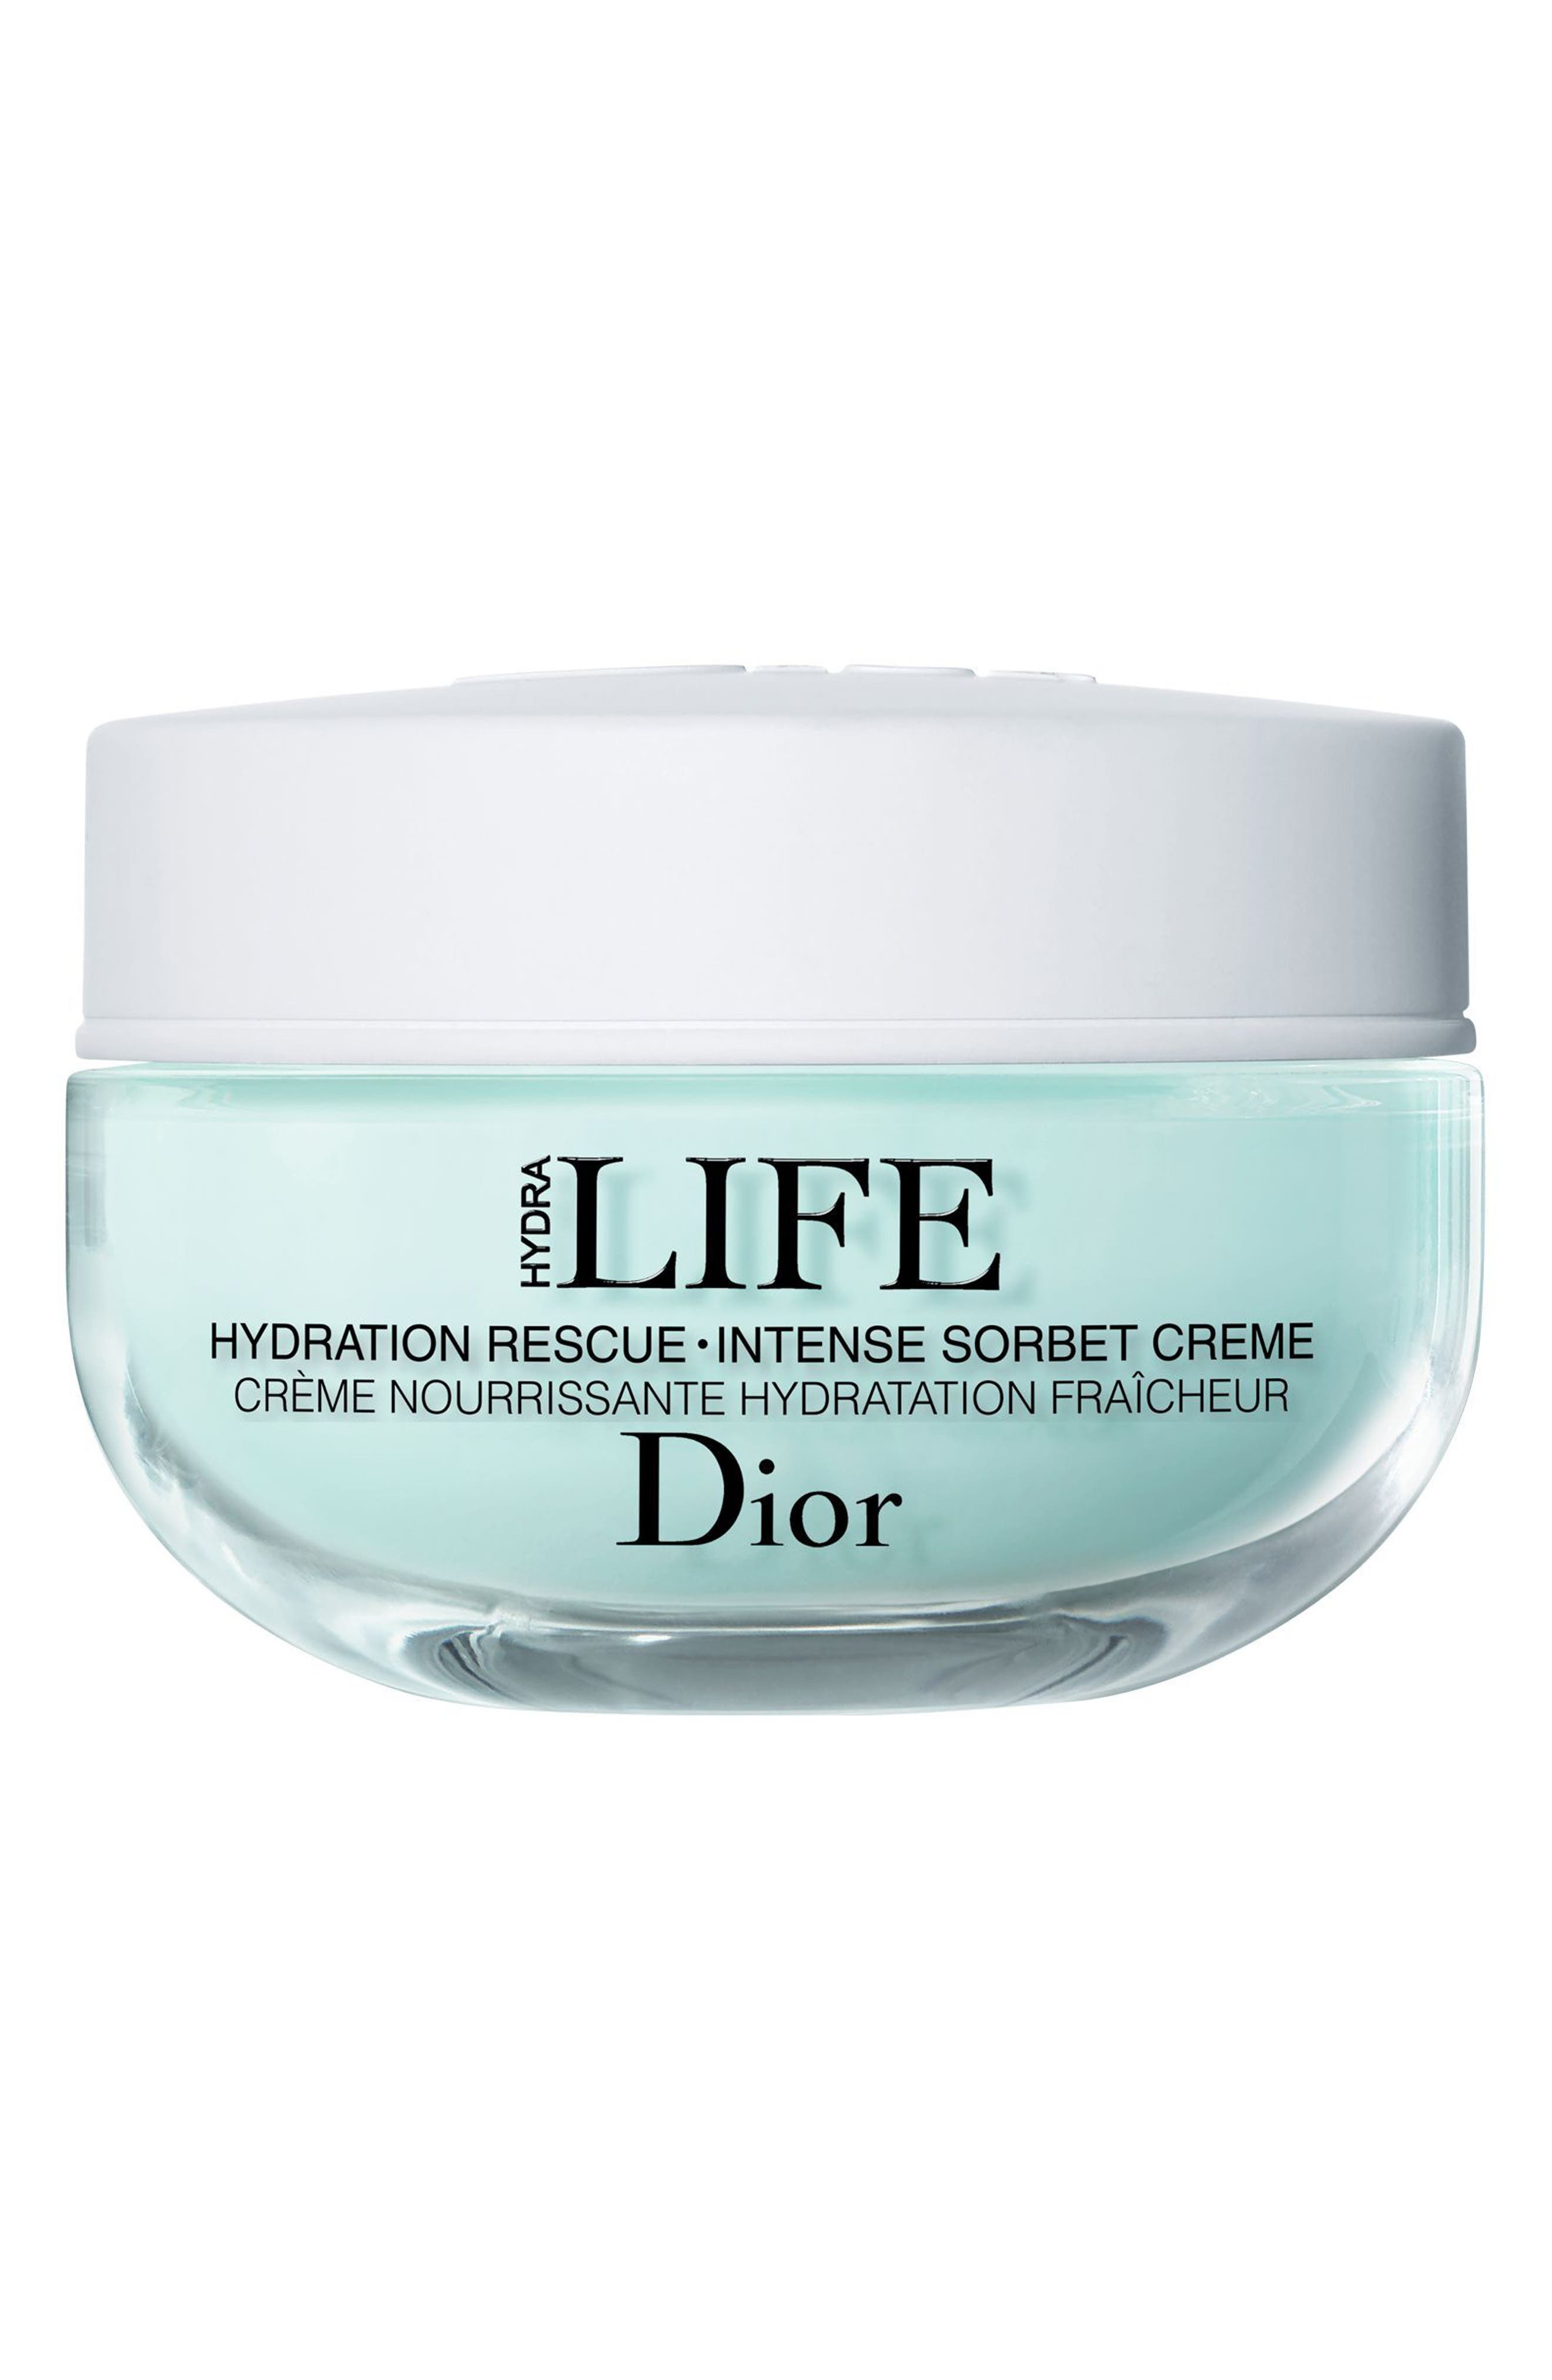 Hydra Life Hydration Rescue Intense Sorbet Creme,                             Main thumbnail 1, color,                             NO COLOR